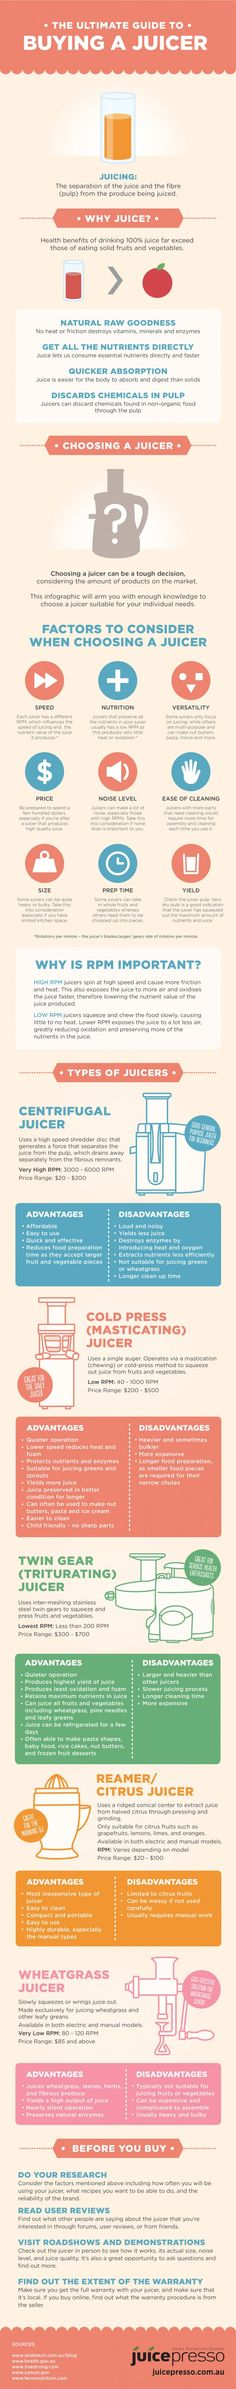 The Ultimate Guide to Buying a Juicer Infographic  http://visual.ly/ultimate-guide-buying-juicer